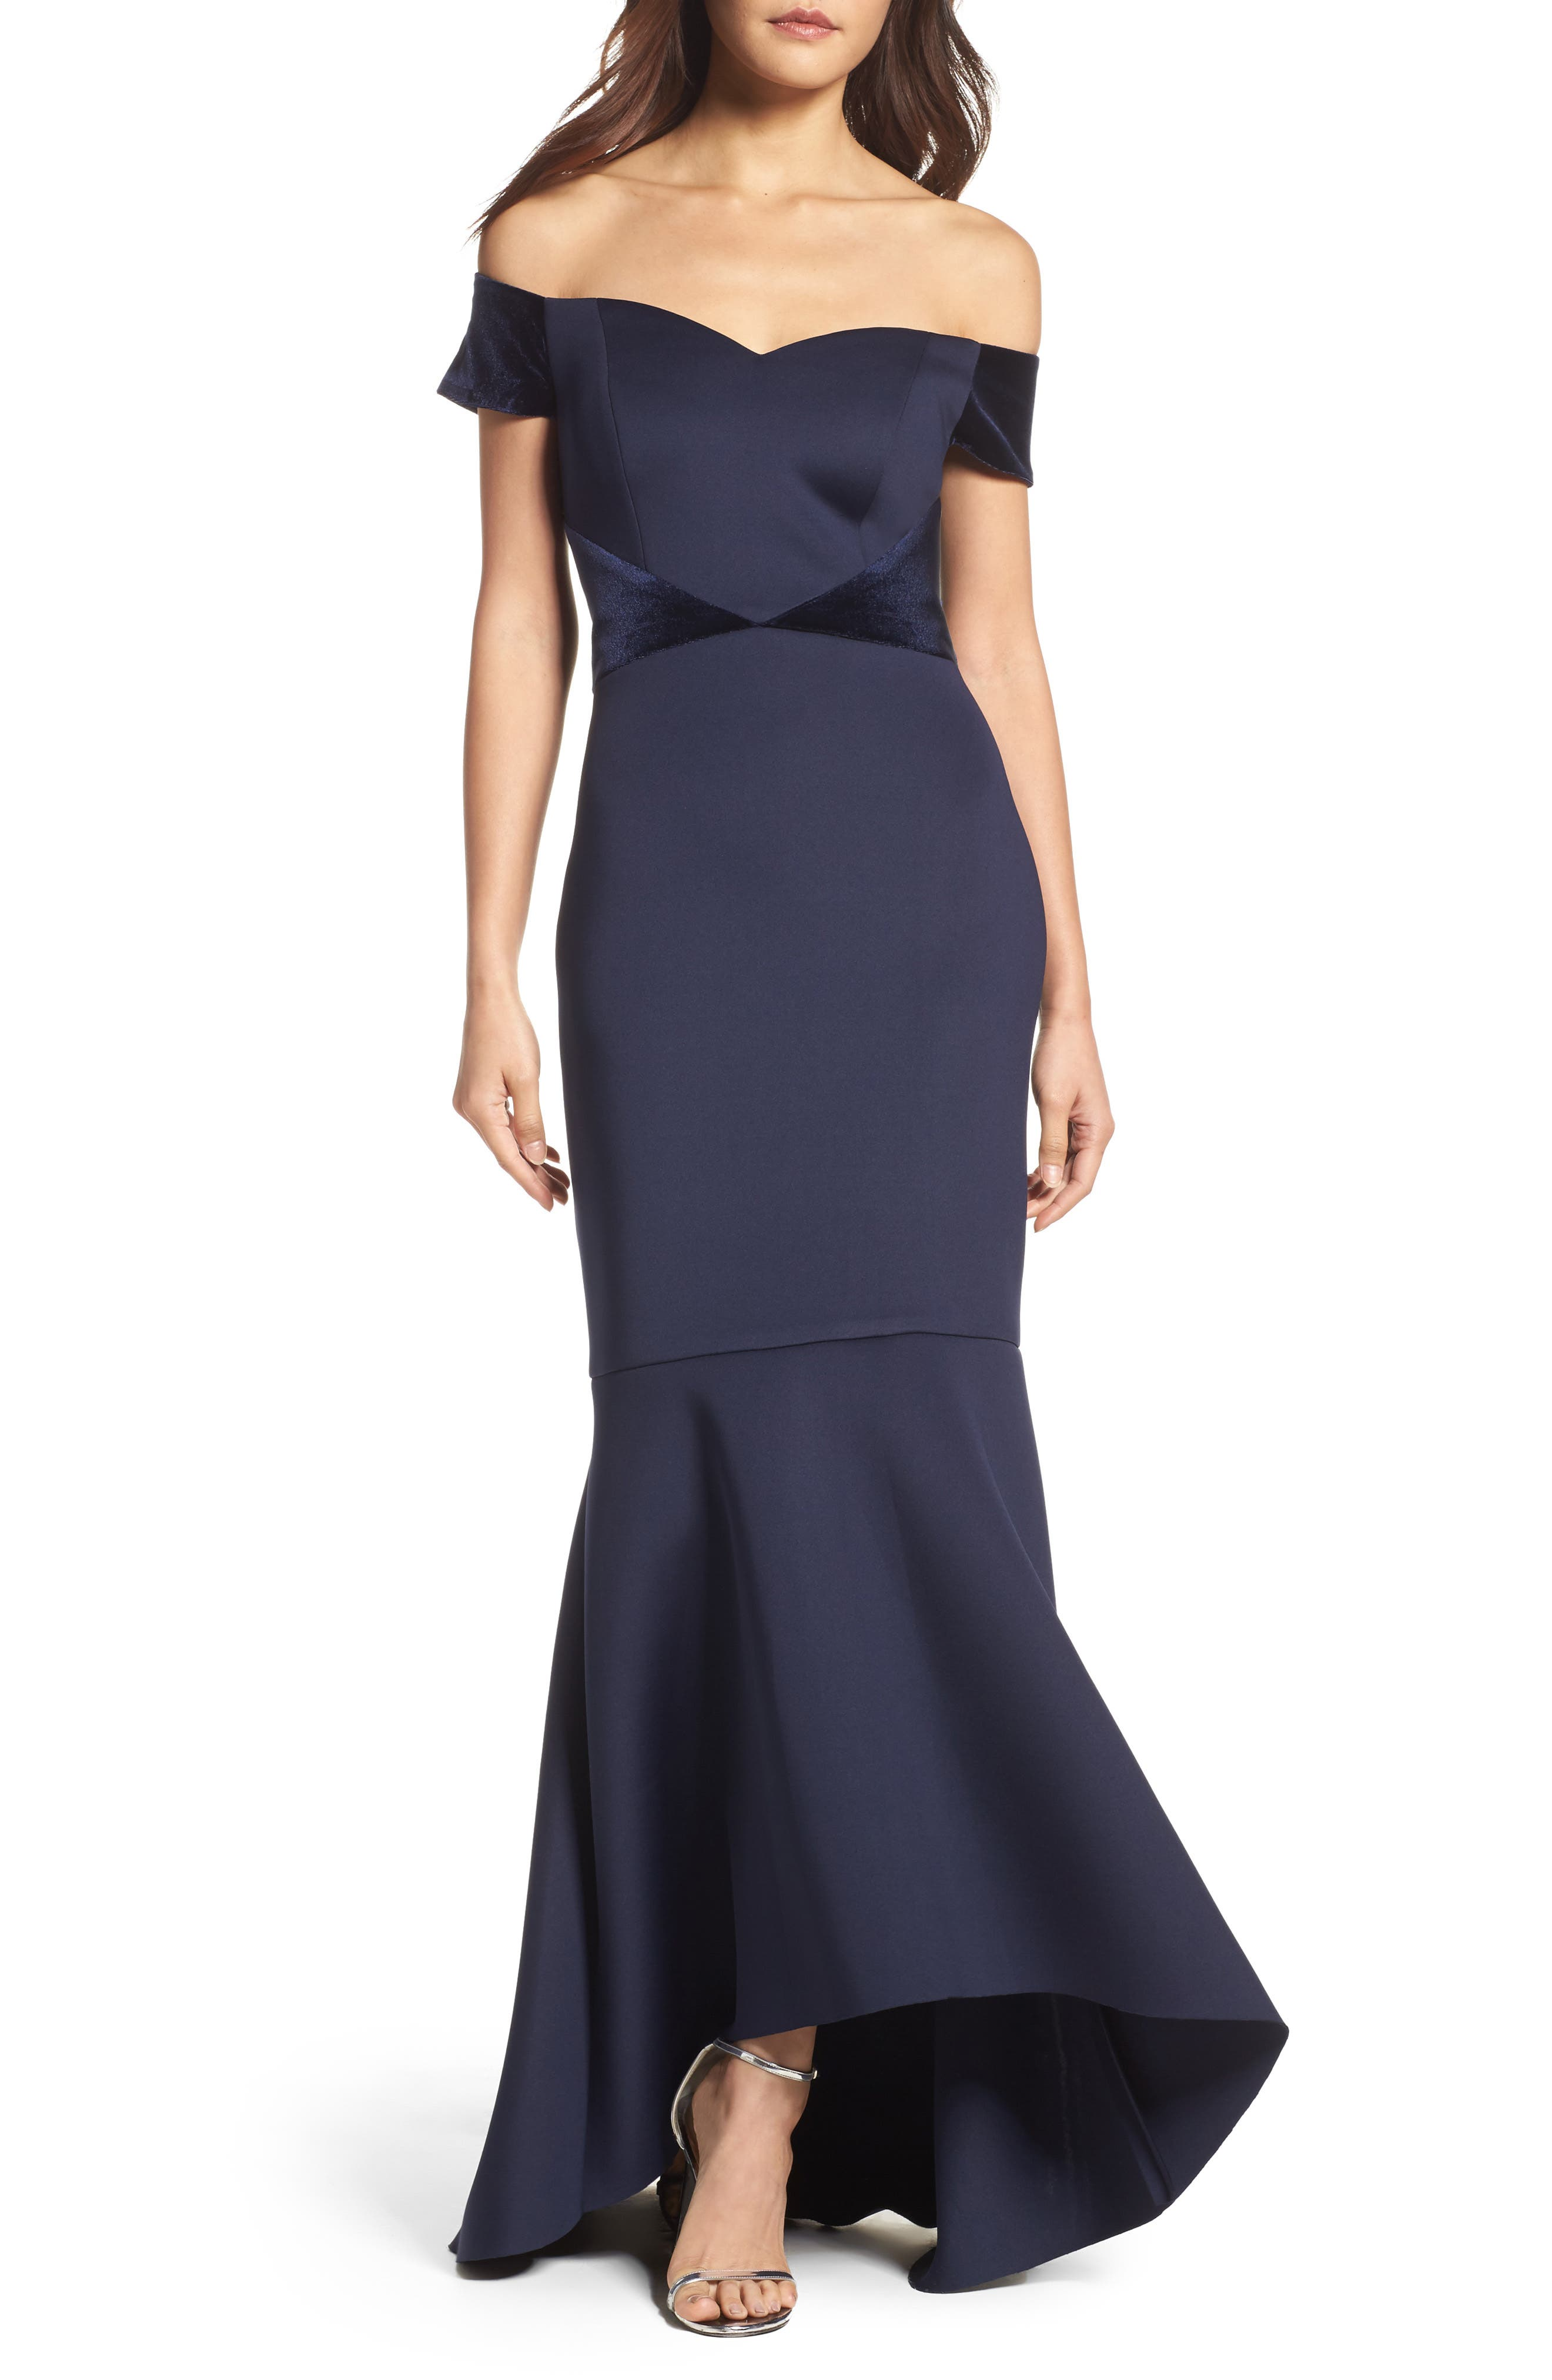 Alternate Image 1 Selected - Eliza J Off the Shoulder High/Low Mermaid Gown (Regular & Petite)